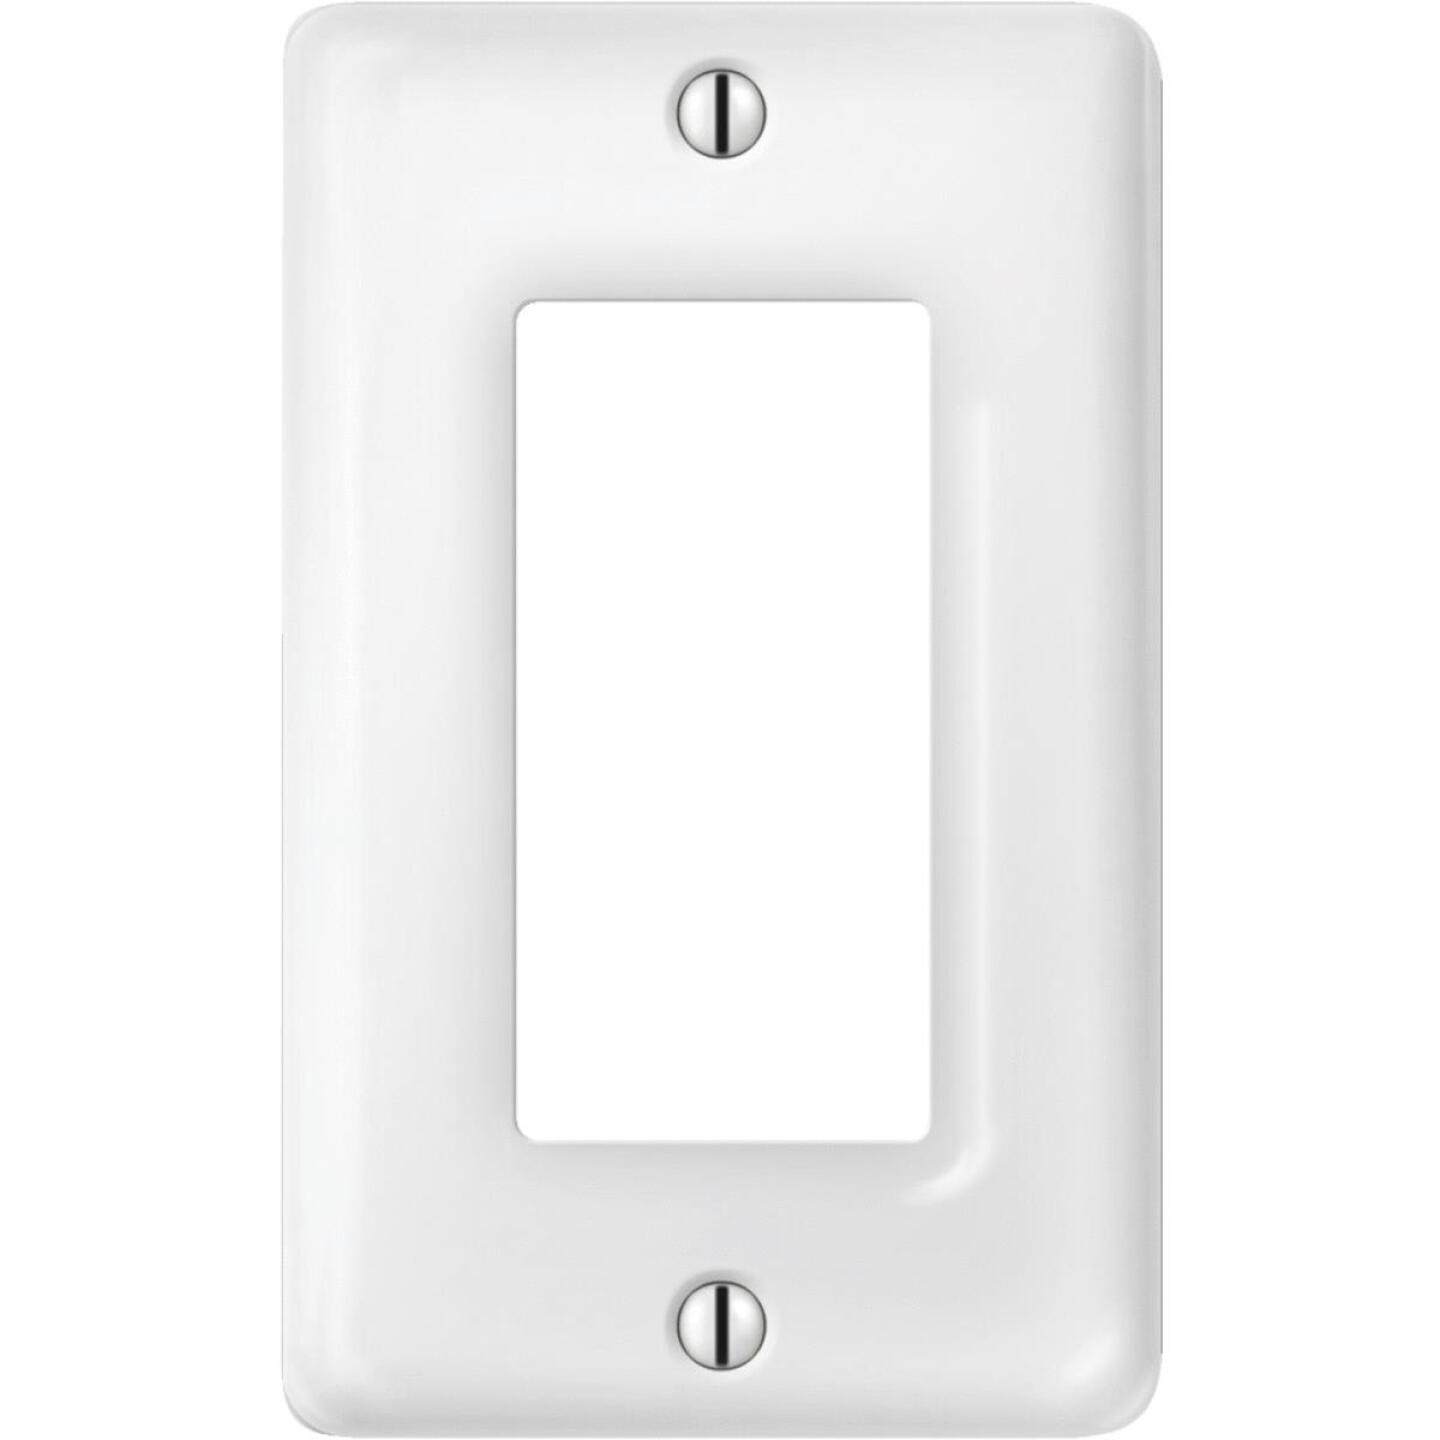 Amerelle 1-Gang Ceramic Rocker Decorator Wall Plate, White Image 1